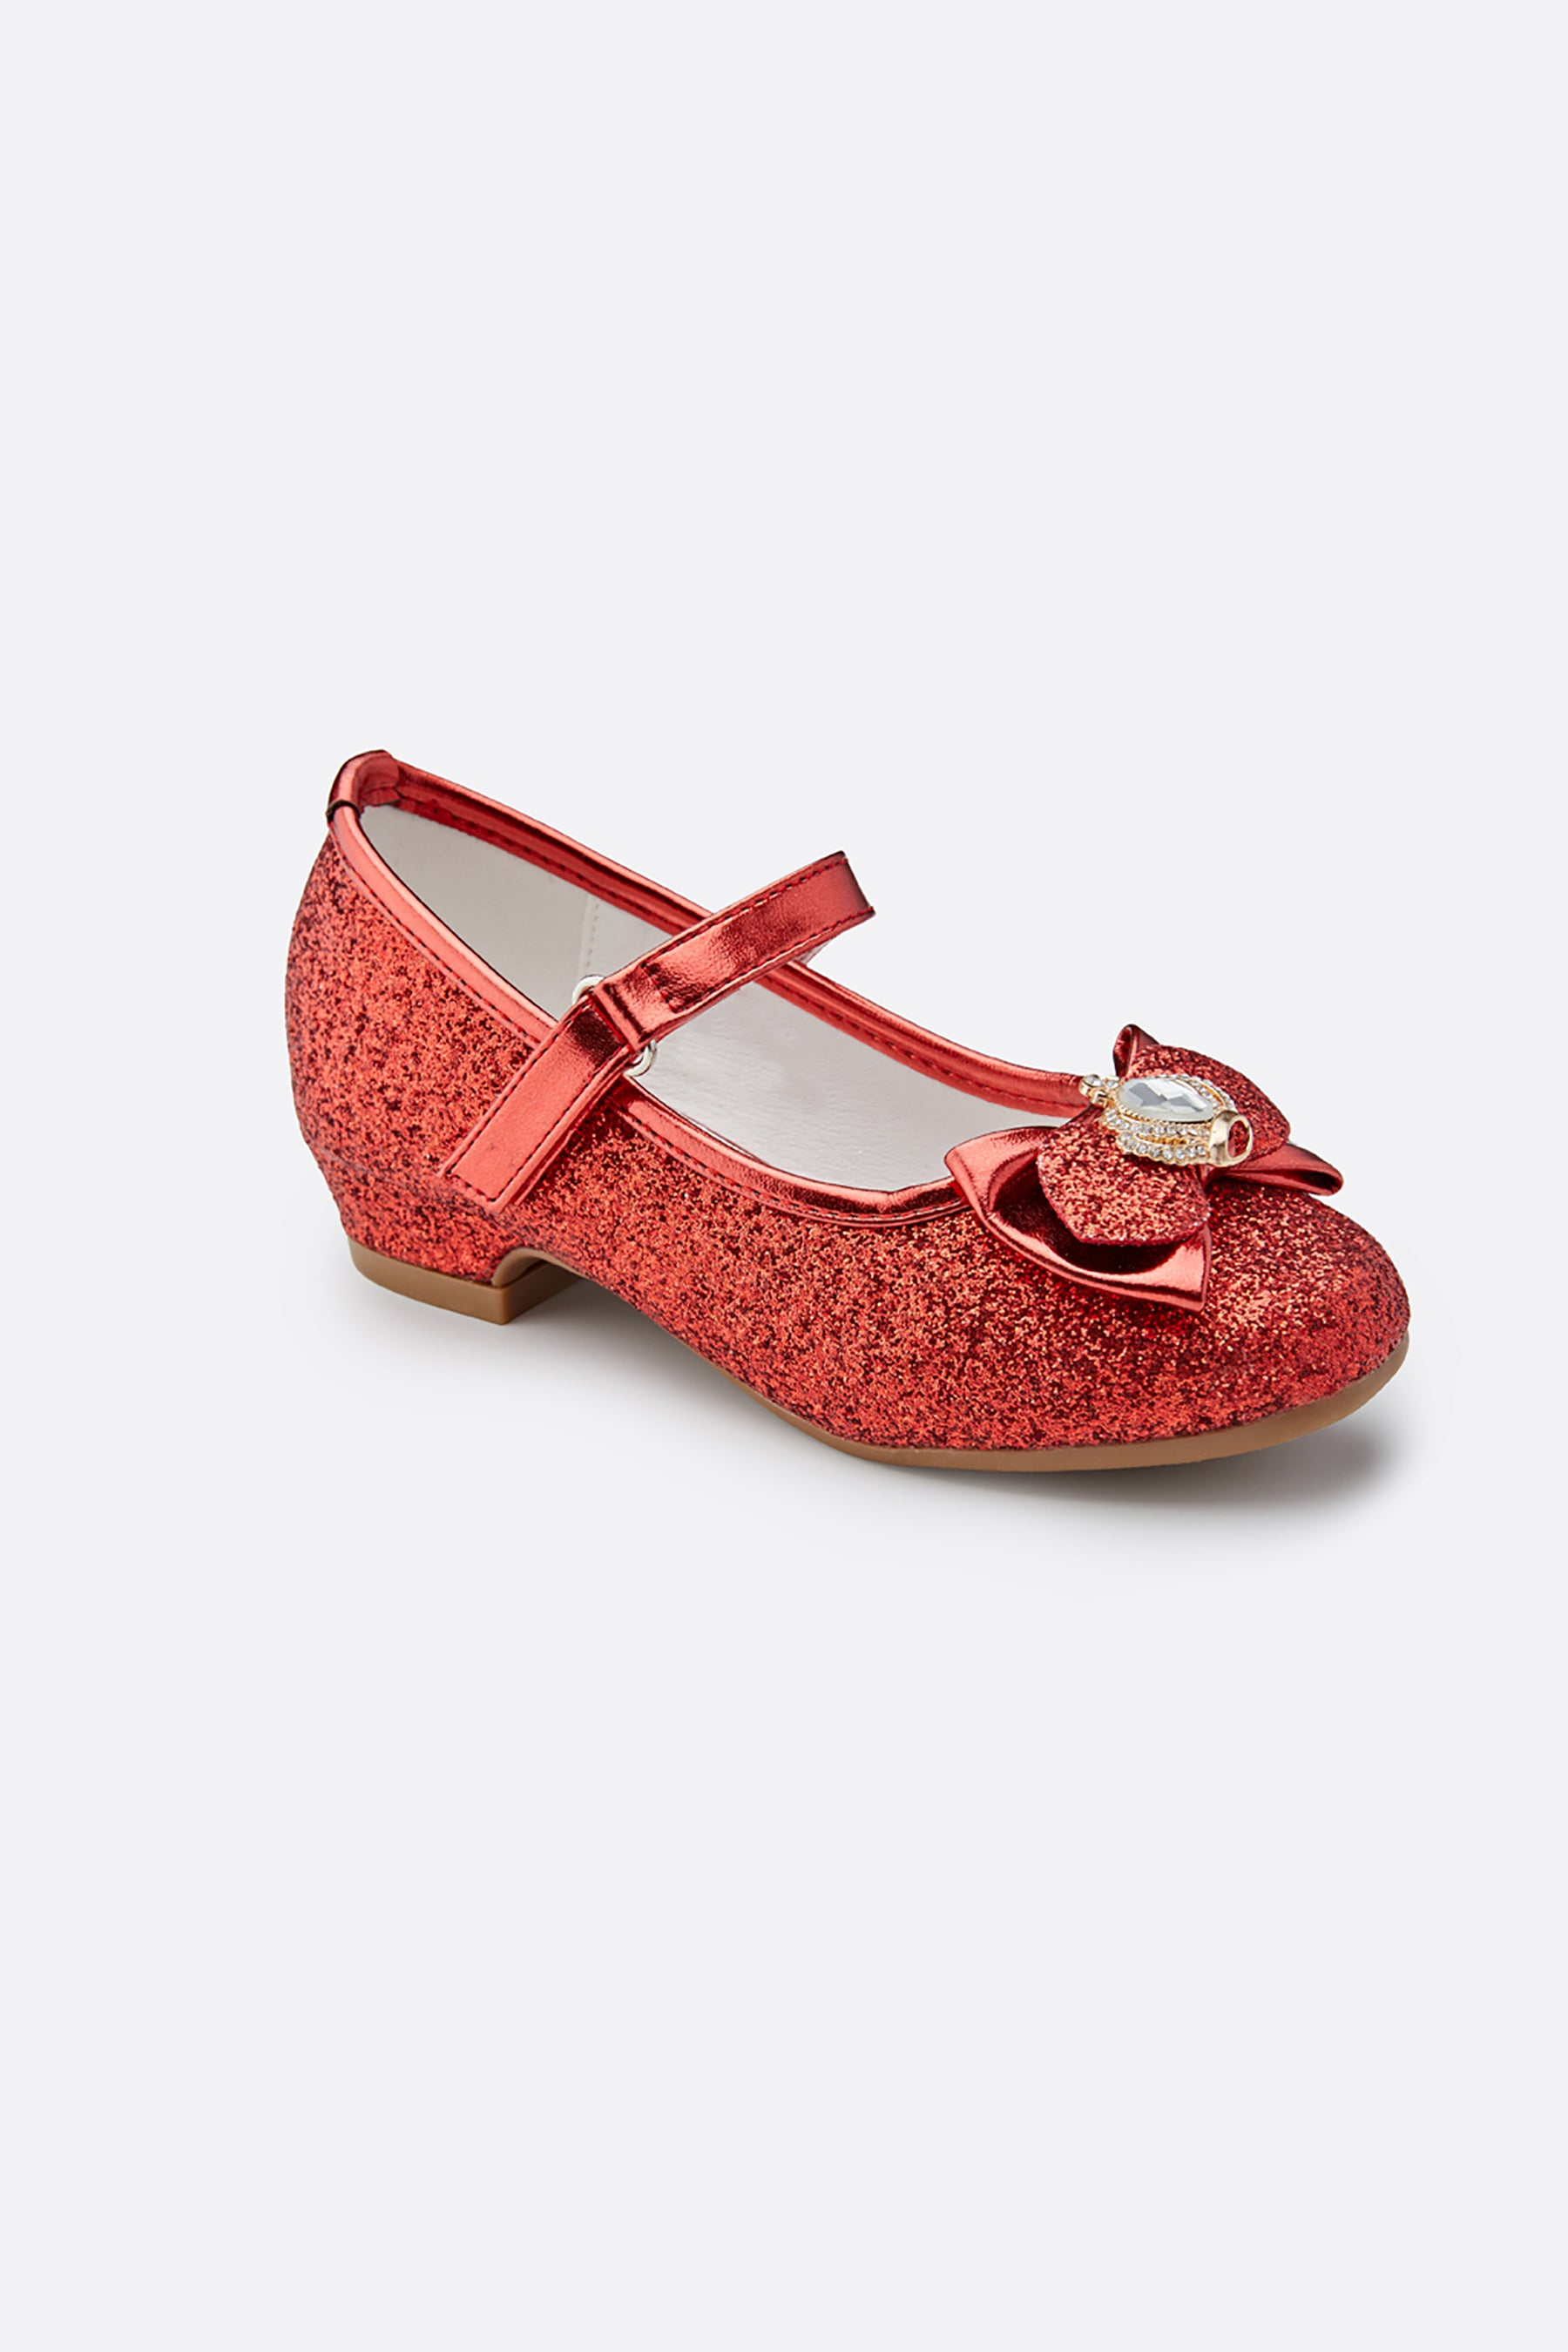 Girls Crown Glitter Mary Jane Dress Shoes